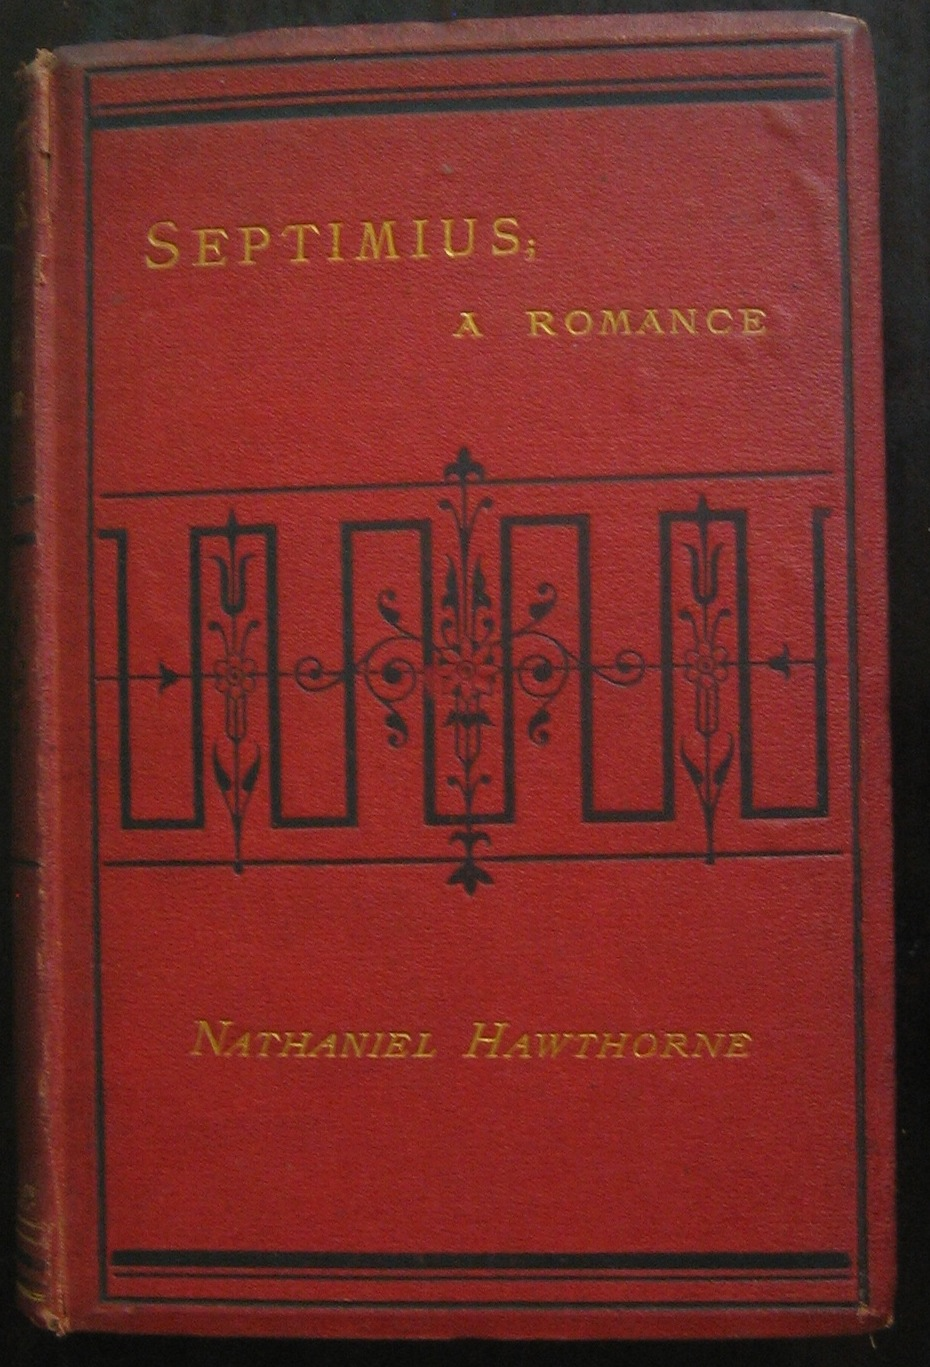 Nathaniel Hawthorne, Septimius: a romance. London: Henry S. King & Co., 1872. (PS1872 .S4 1872d)